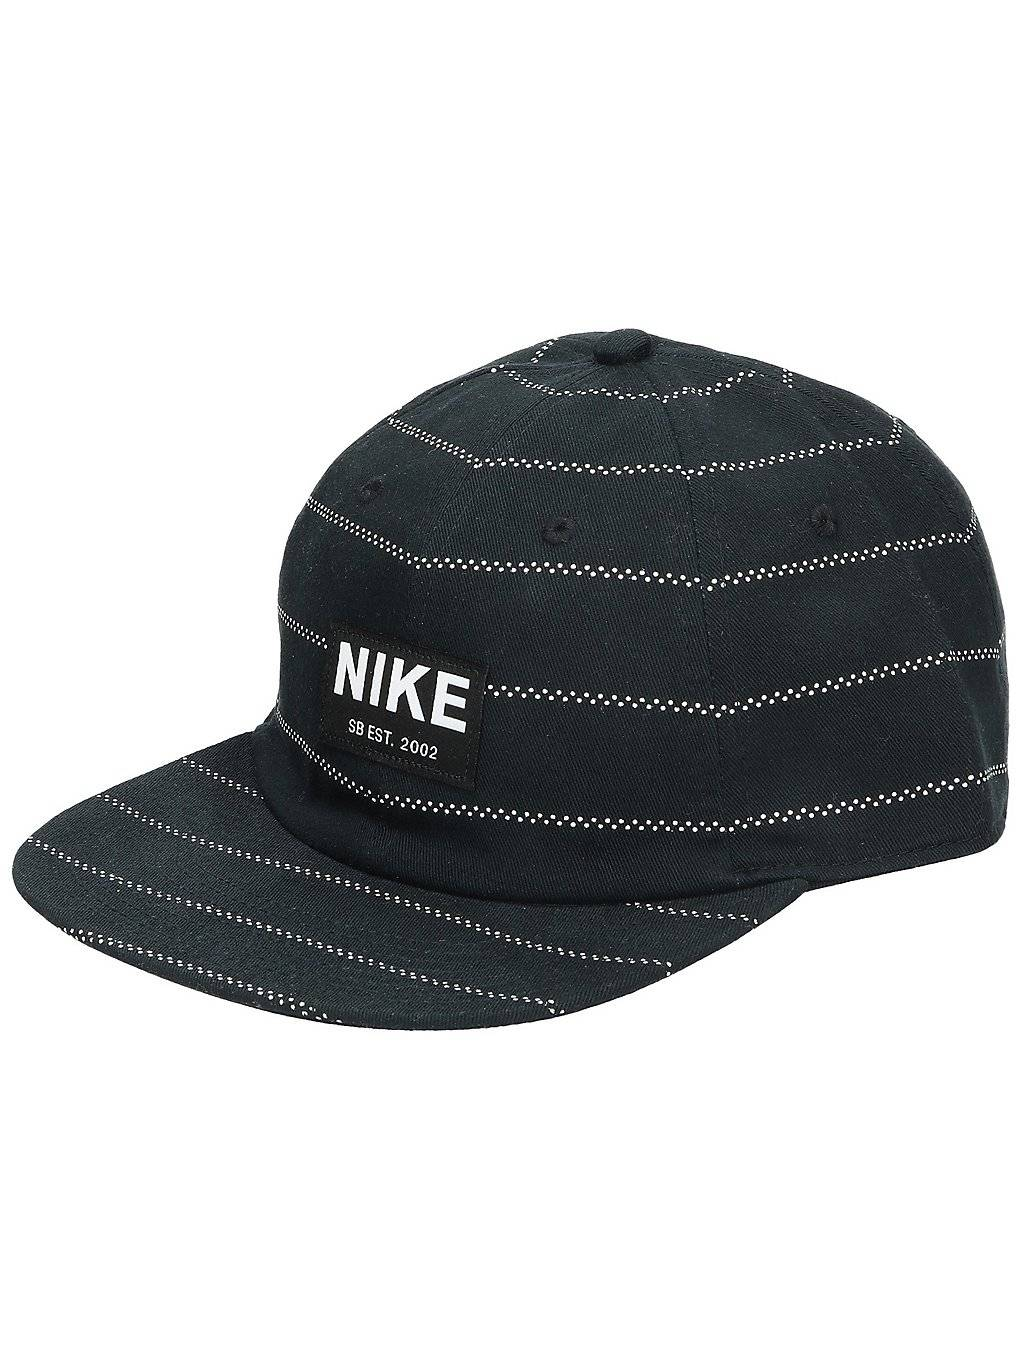 Image of Nike H86 Washed Cap musta